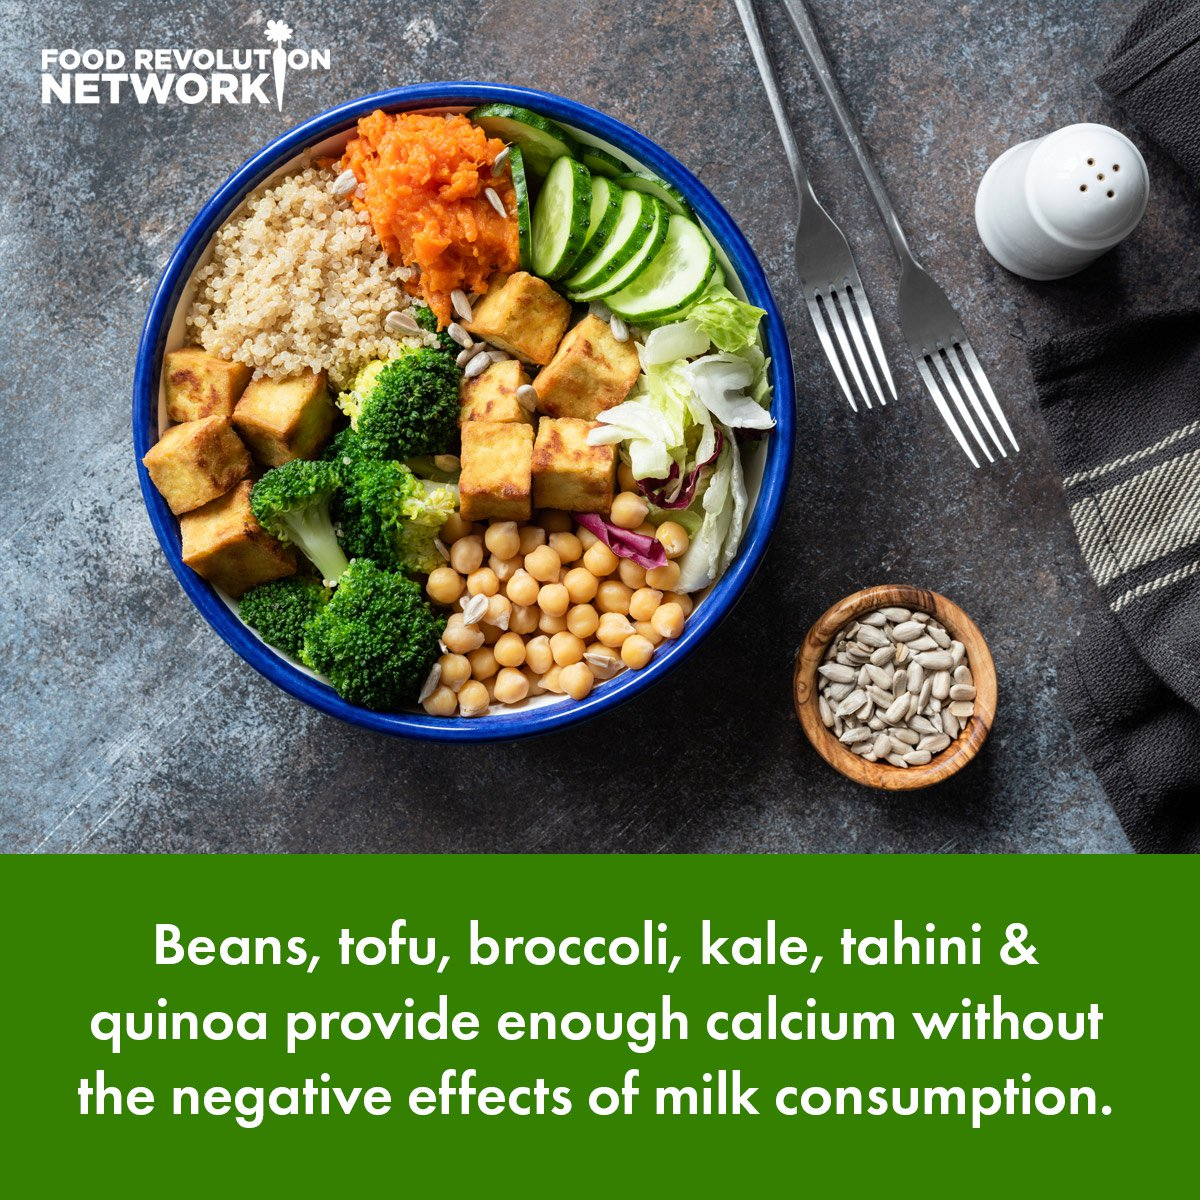 Beans, tofu, broccoli, kale, tahini & quinoa provide enough calcium without the negative effects of milk consumption.